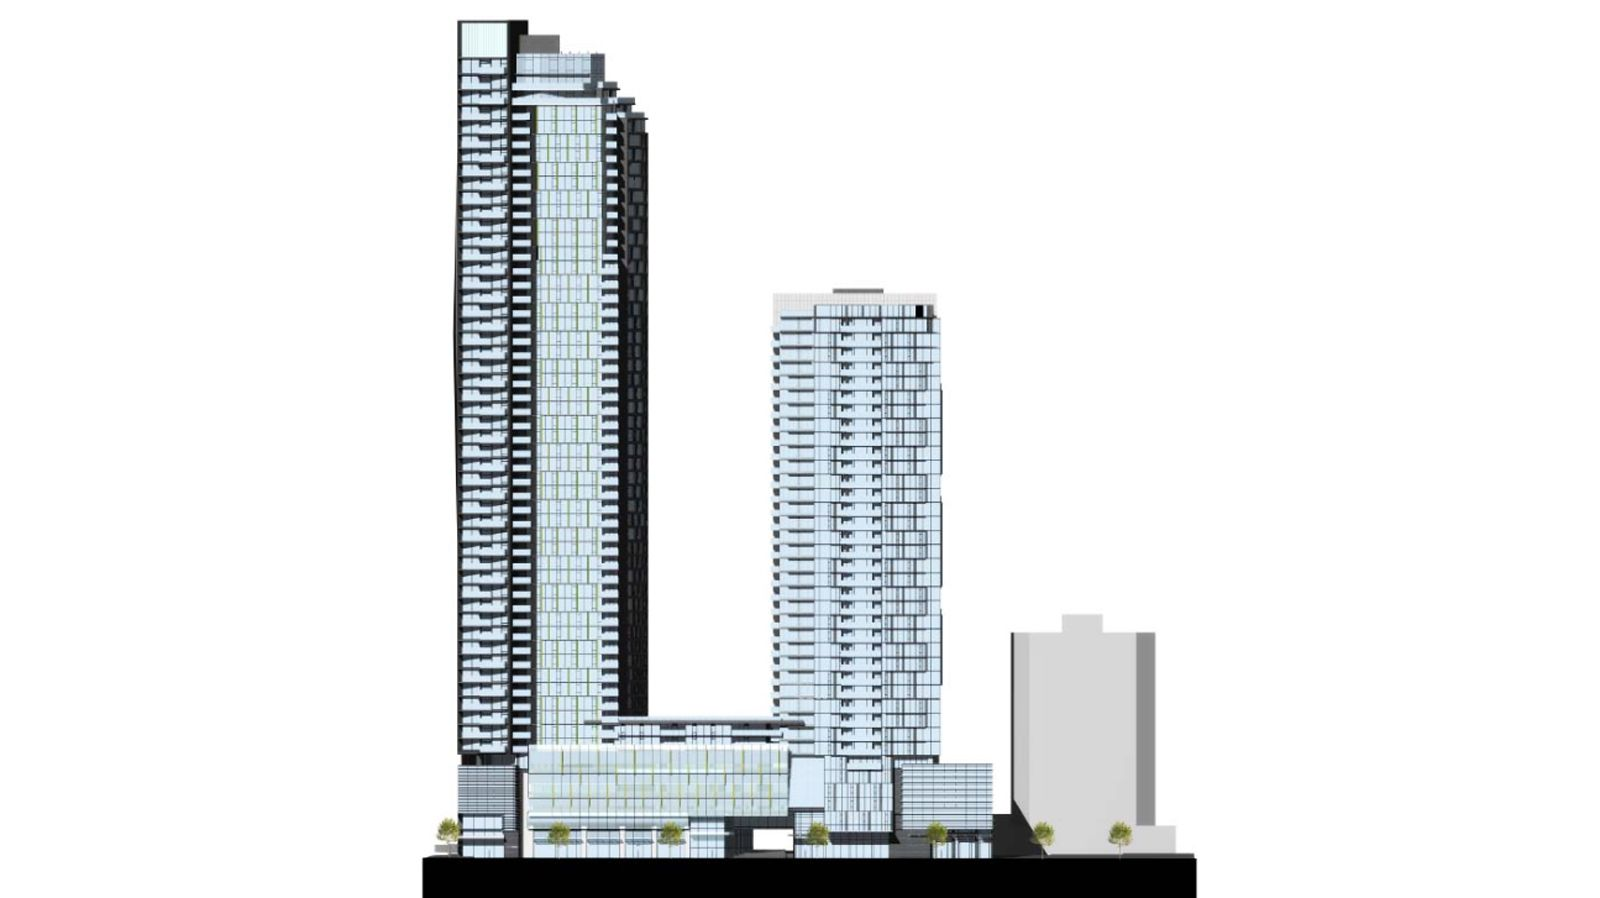 Mega-tower featured in Pattison's plan for downtown Vancouver #Canada #Vancouver #Metro #MetroVancouver #BC #BritishColumbia #British #Columbia #downtown #downtownVancouver http://bc.ctvnews.ca/mega-tower-featured-in-pattison-s-plan-for-downtown-vancouver-1.1543404#ixzz2lx3sAhcz